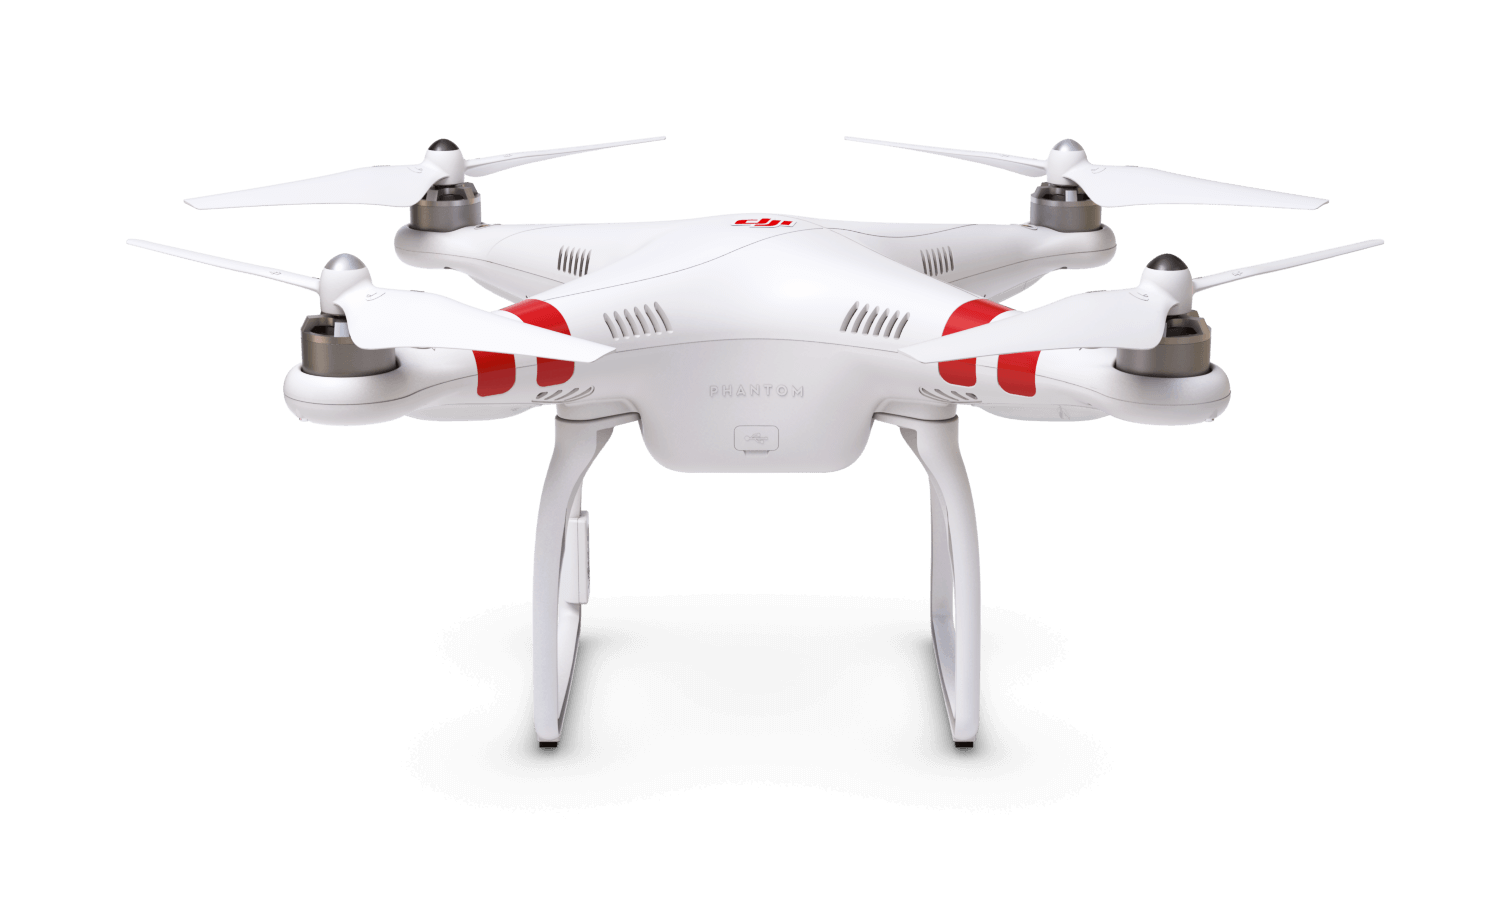 DJI Phantom 2 - What are the best drones for hacking? - Slant